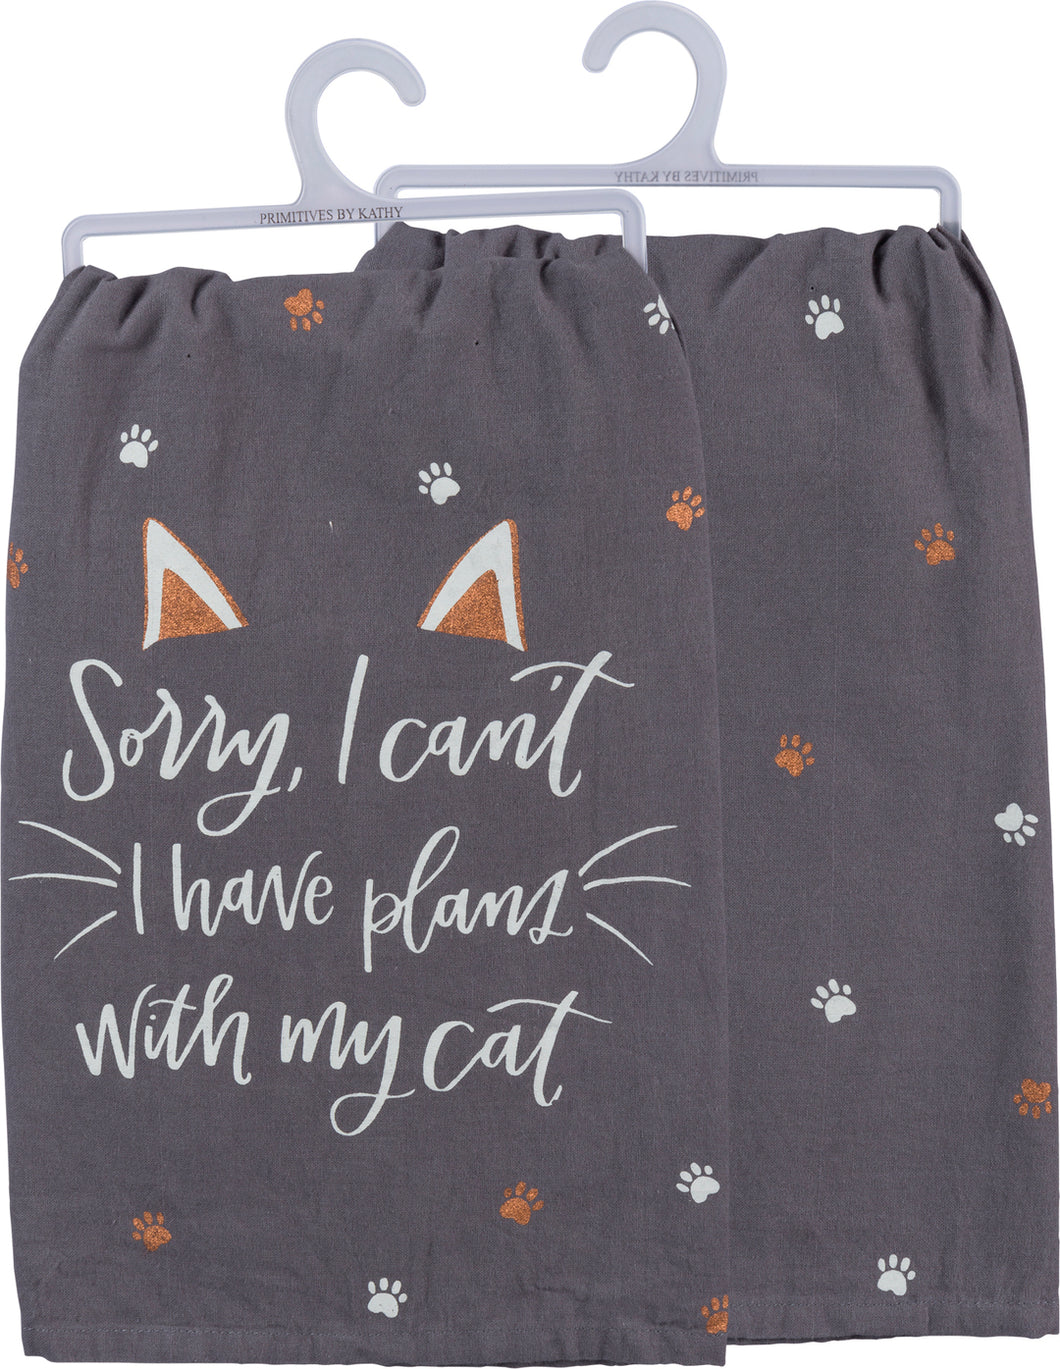 Sorry I Can't I Have Plans With My Cat Dish Towel - Meyer's Market